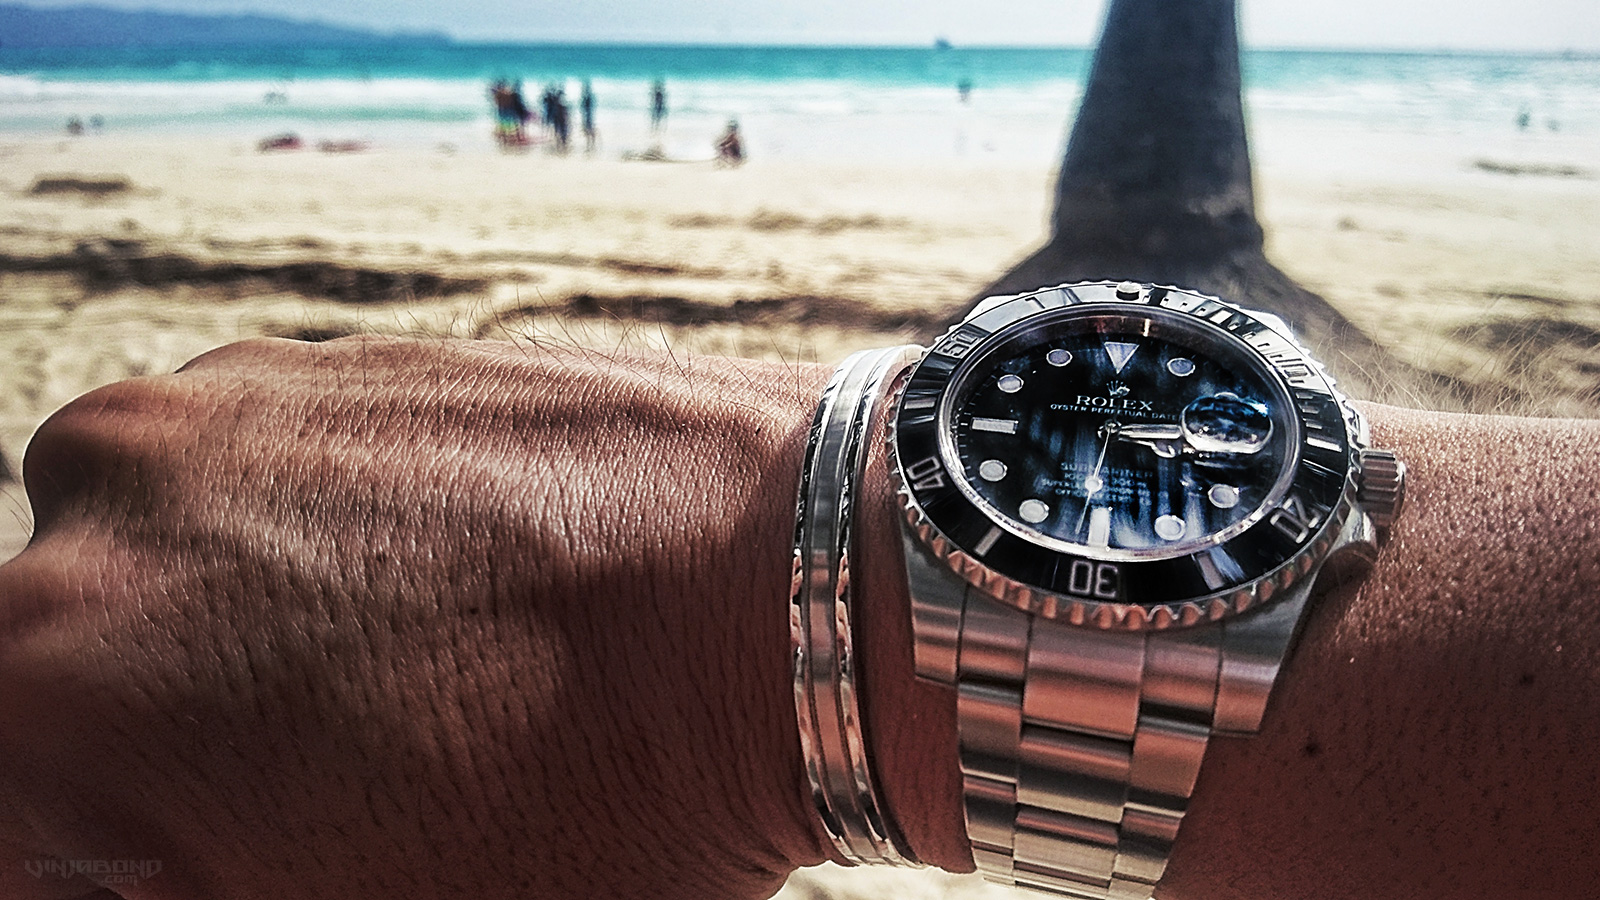 Rolex Submariner at White Beach on Boracay, Philippines /// VINJABOND